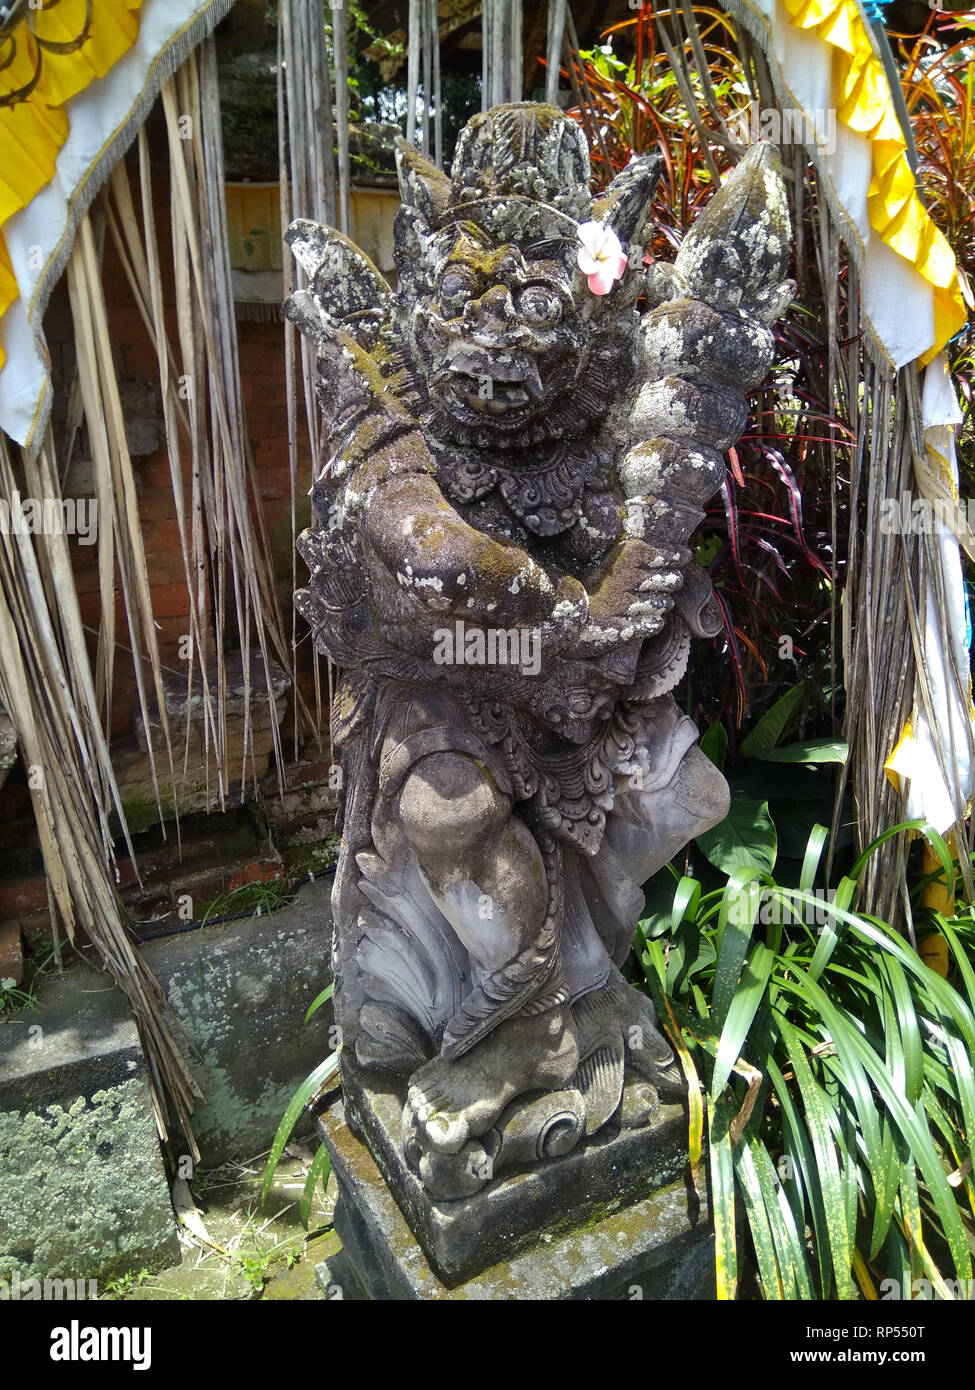 Ubud-Barong Lion Guard at Pura Tirta Tawar - Stock Image